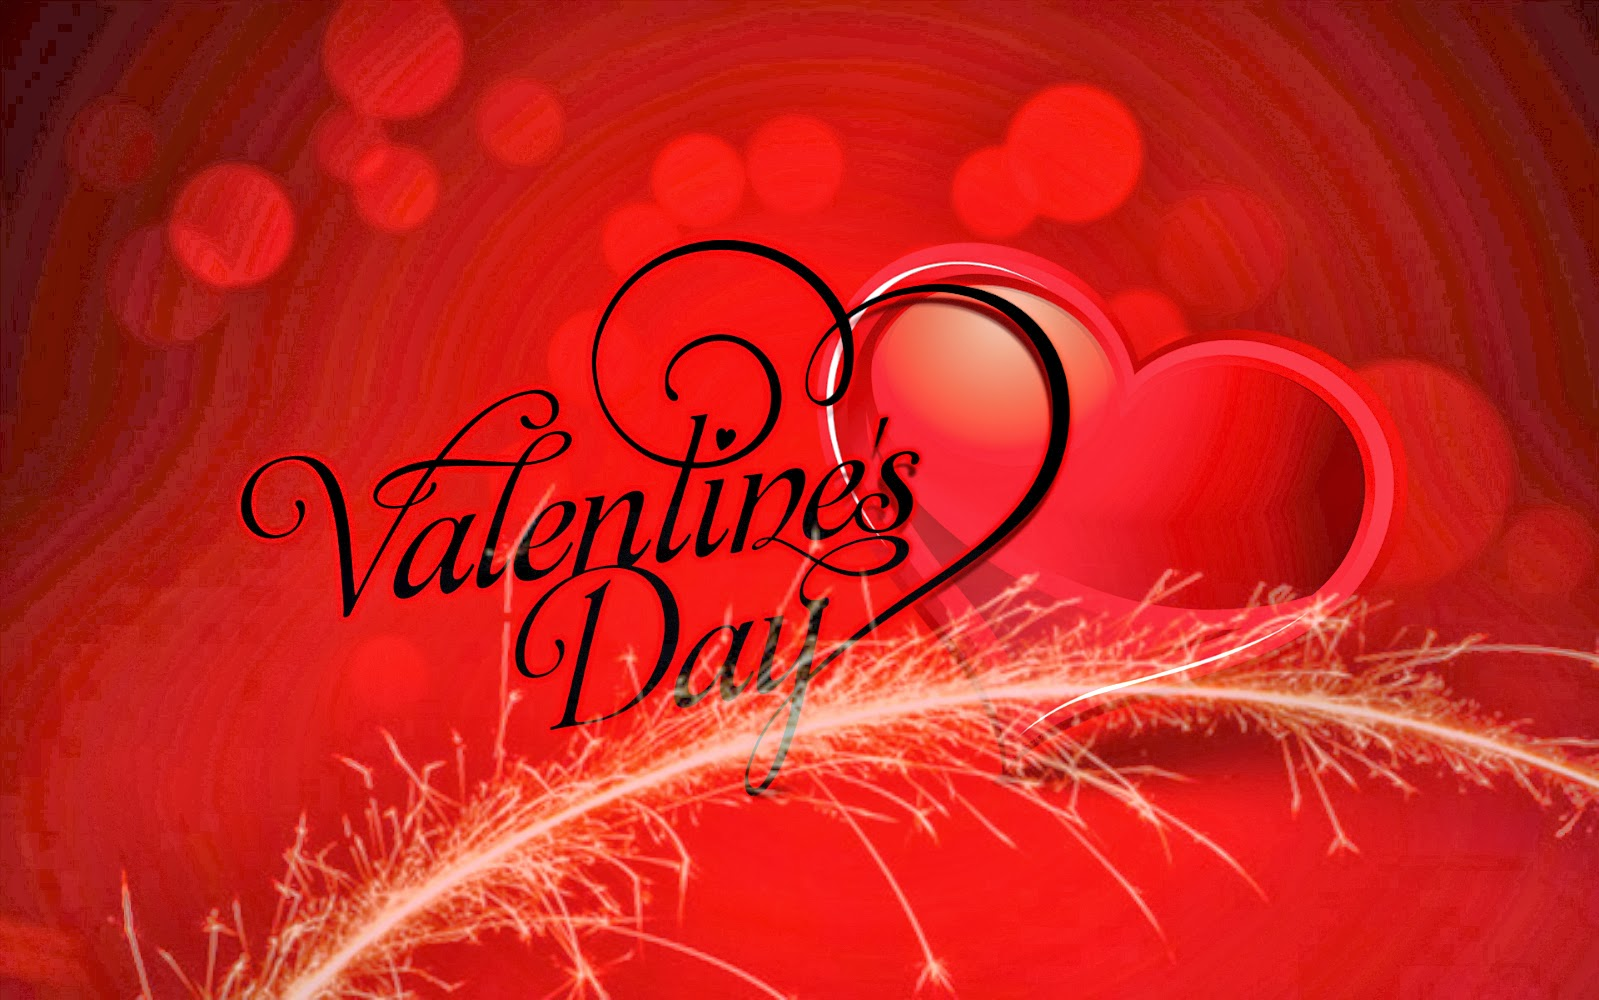 valentine day hd wallpapers, valentine day 2014 free wallpapers, valentine day high quality wallpapers, valentine day special effect wallpapers